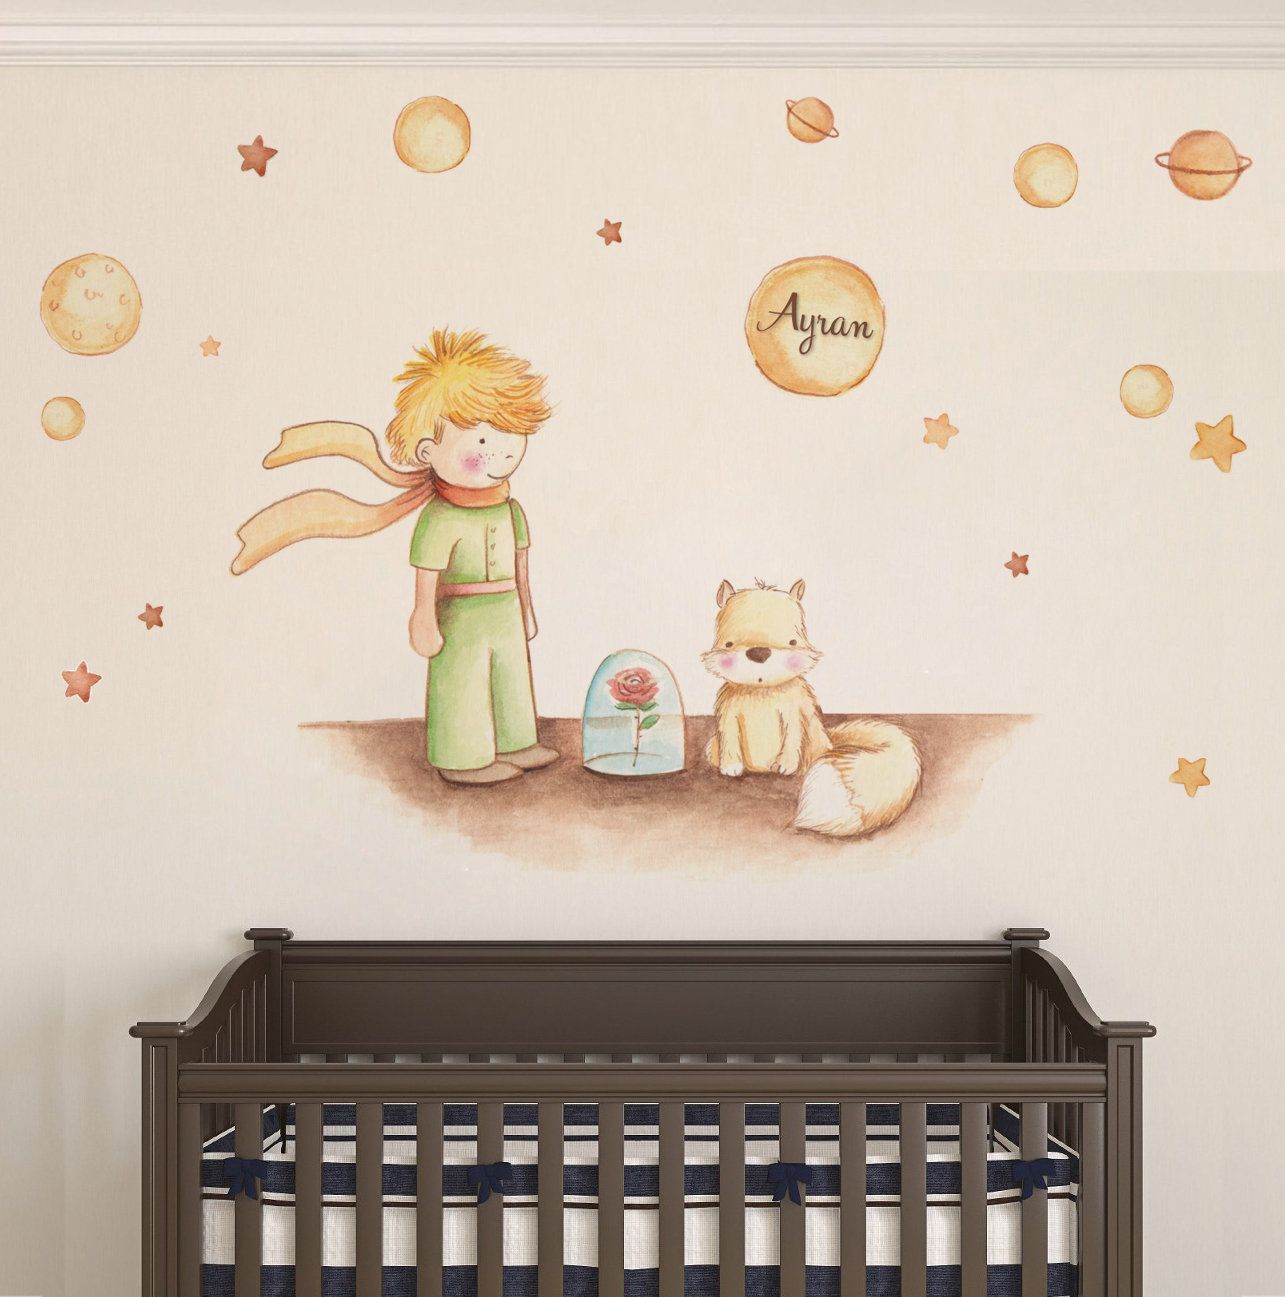 The Little Prince Wall Decal Nursery Wall Art Sticker Kids Room Decor Petit Prince Sticker New Baby Gif Nursery Wall Decals Sticker Wall Art Kid Room Decor